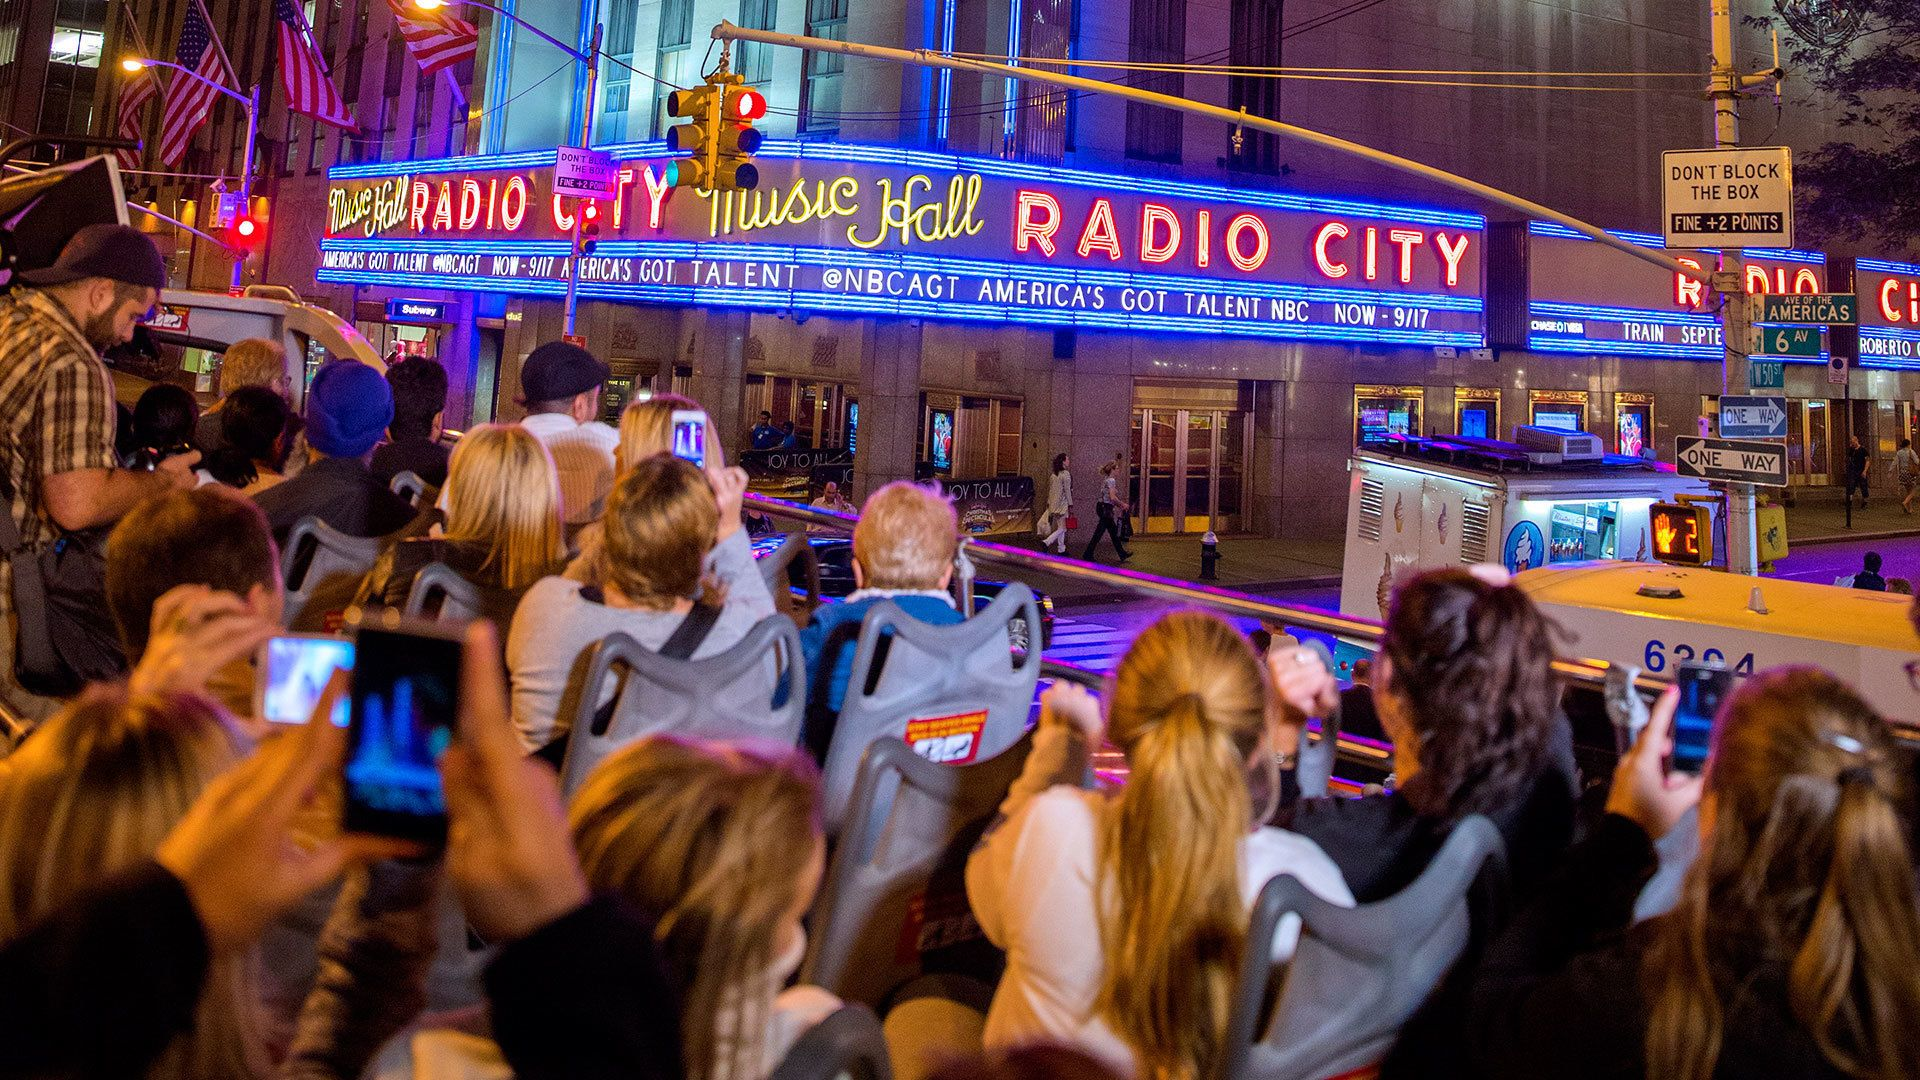 People on the upper level of a tour bus outside Radio City Music Hall in New York